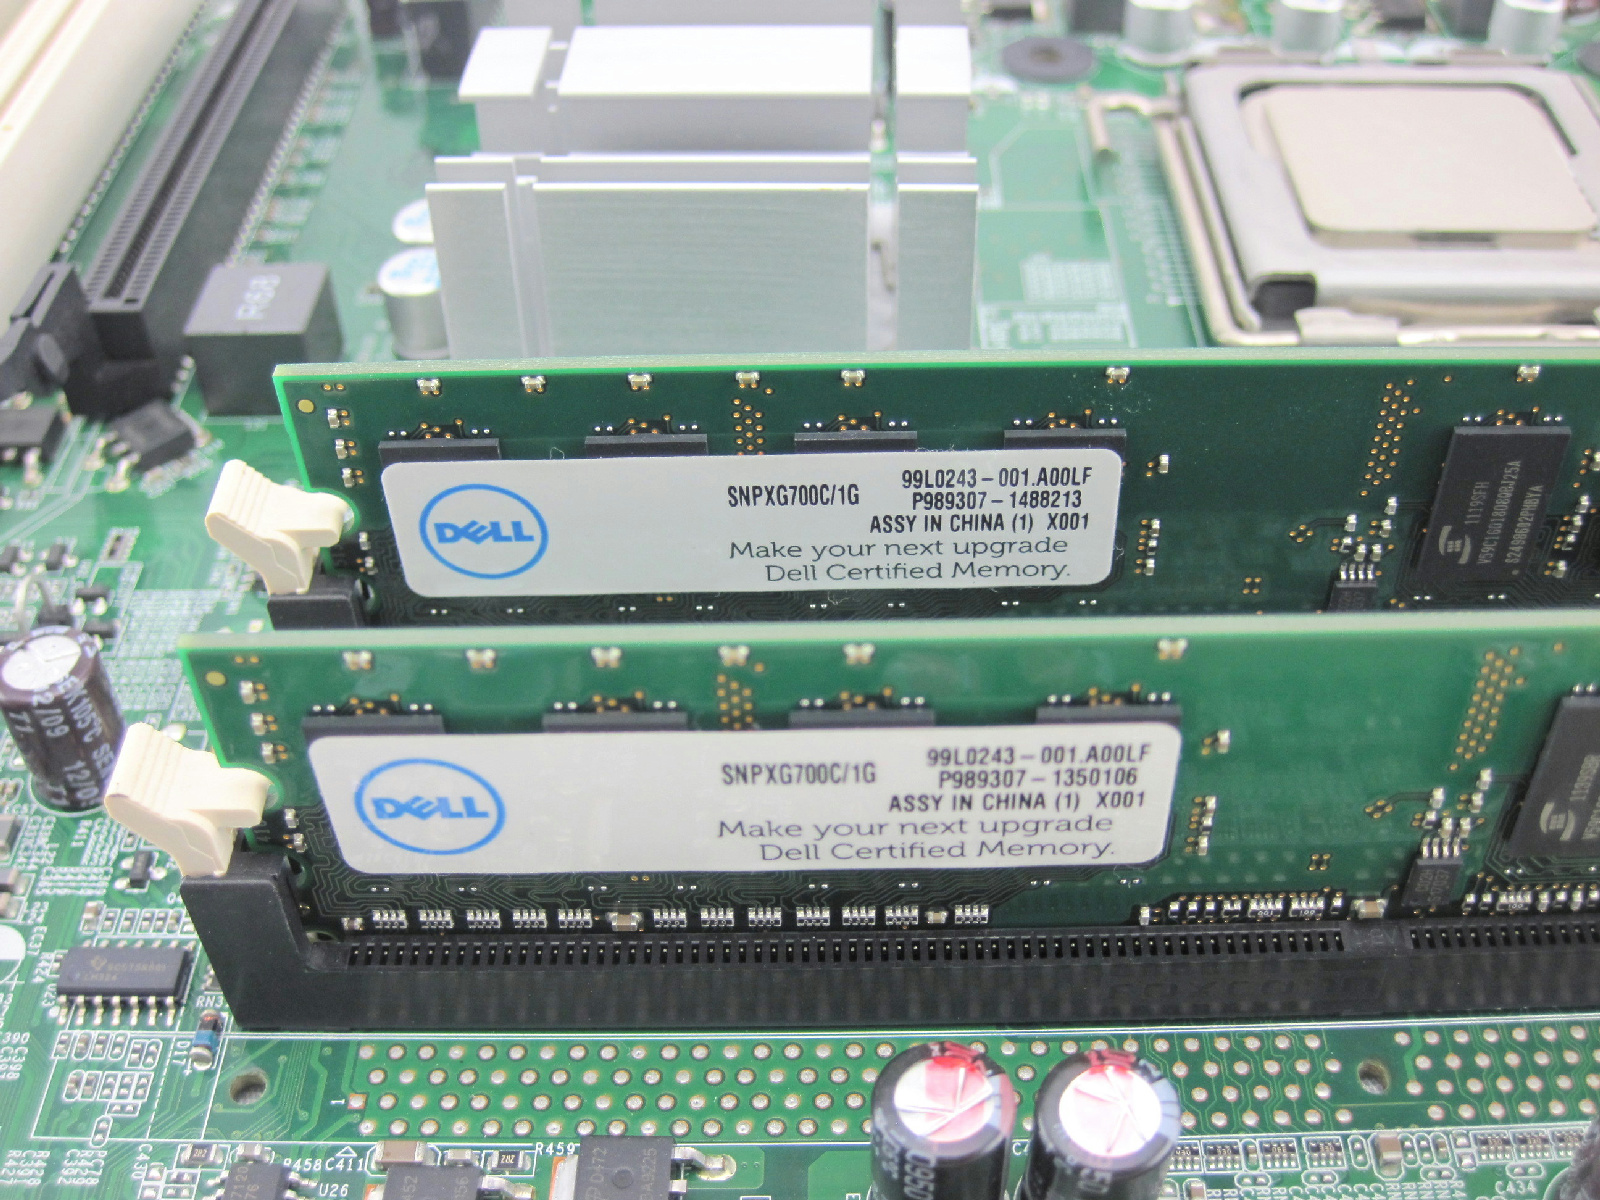 dell dimension 2400 motherboard diagram 220 circuit breaker wiring e93839 related keywords